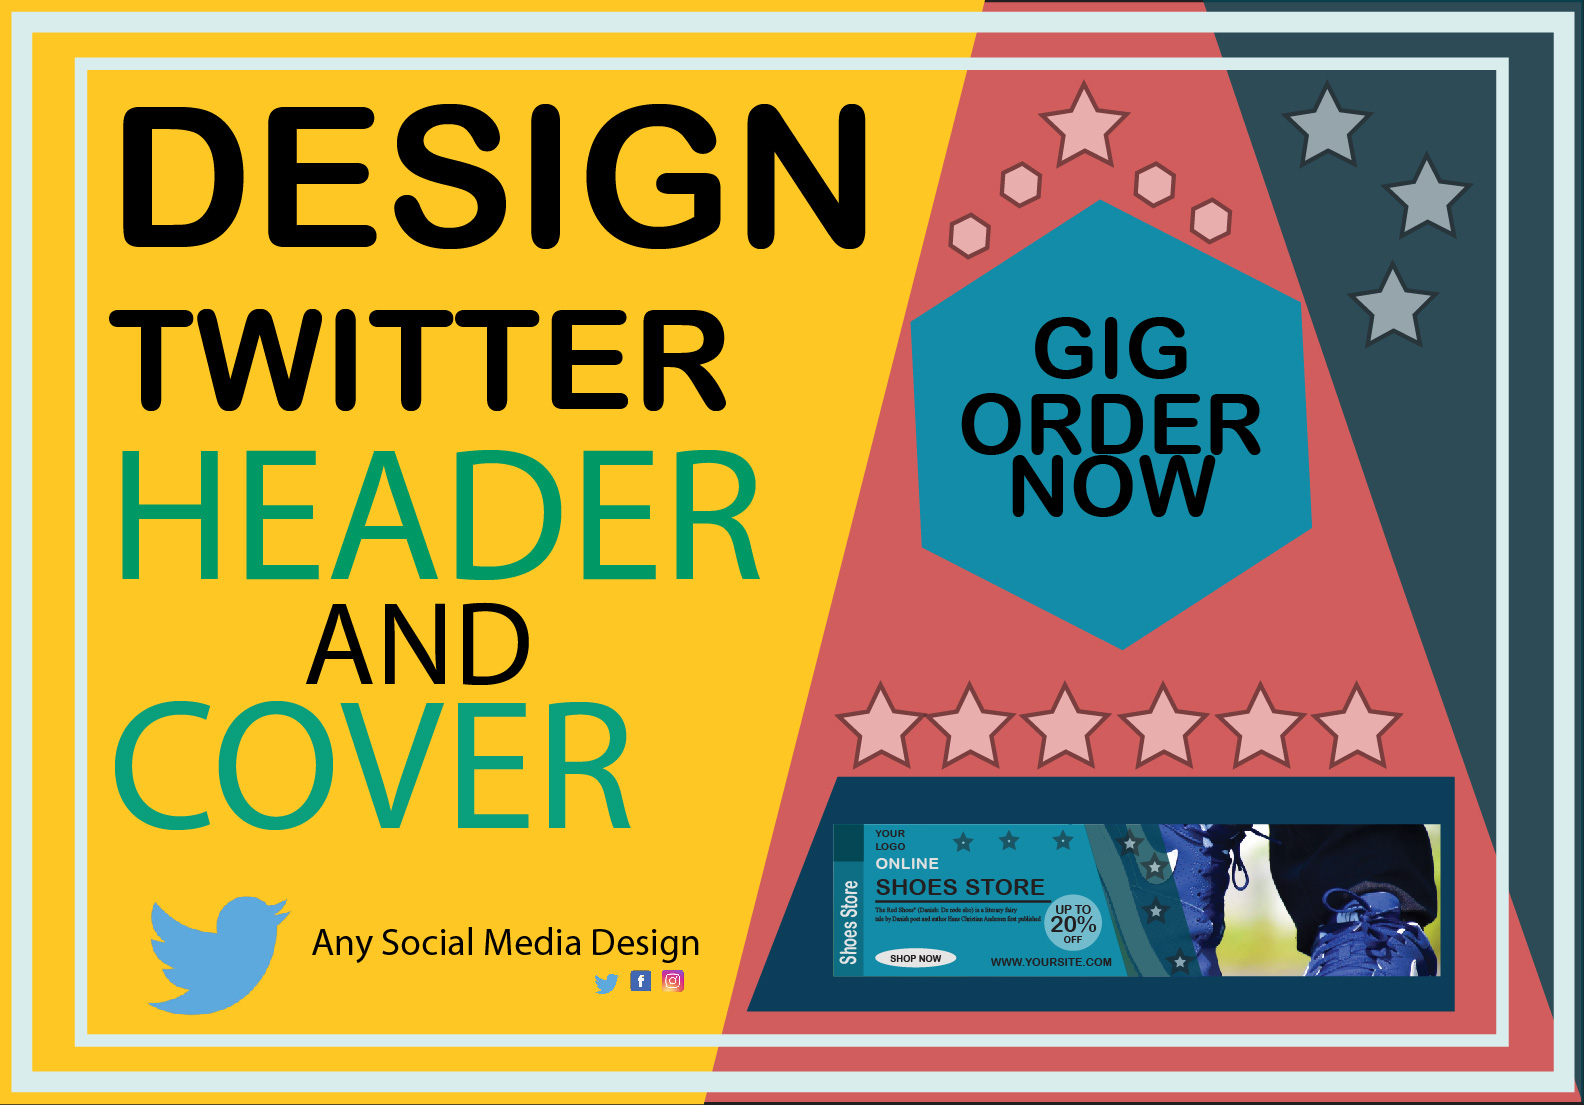 I will create awsome twitter header and cover design in 24 hours